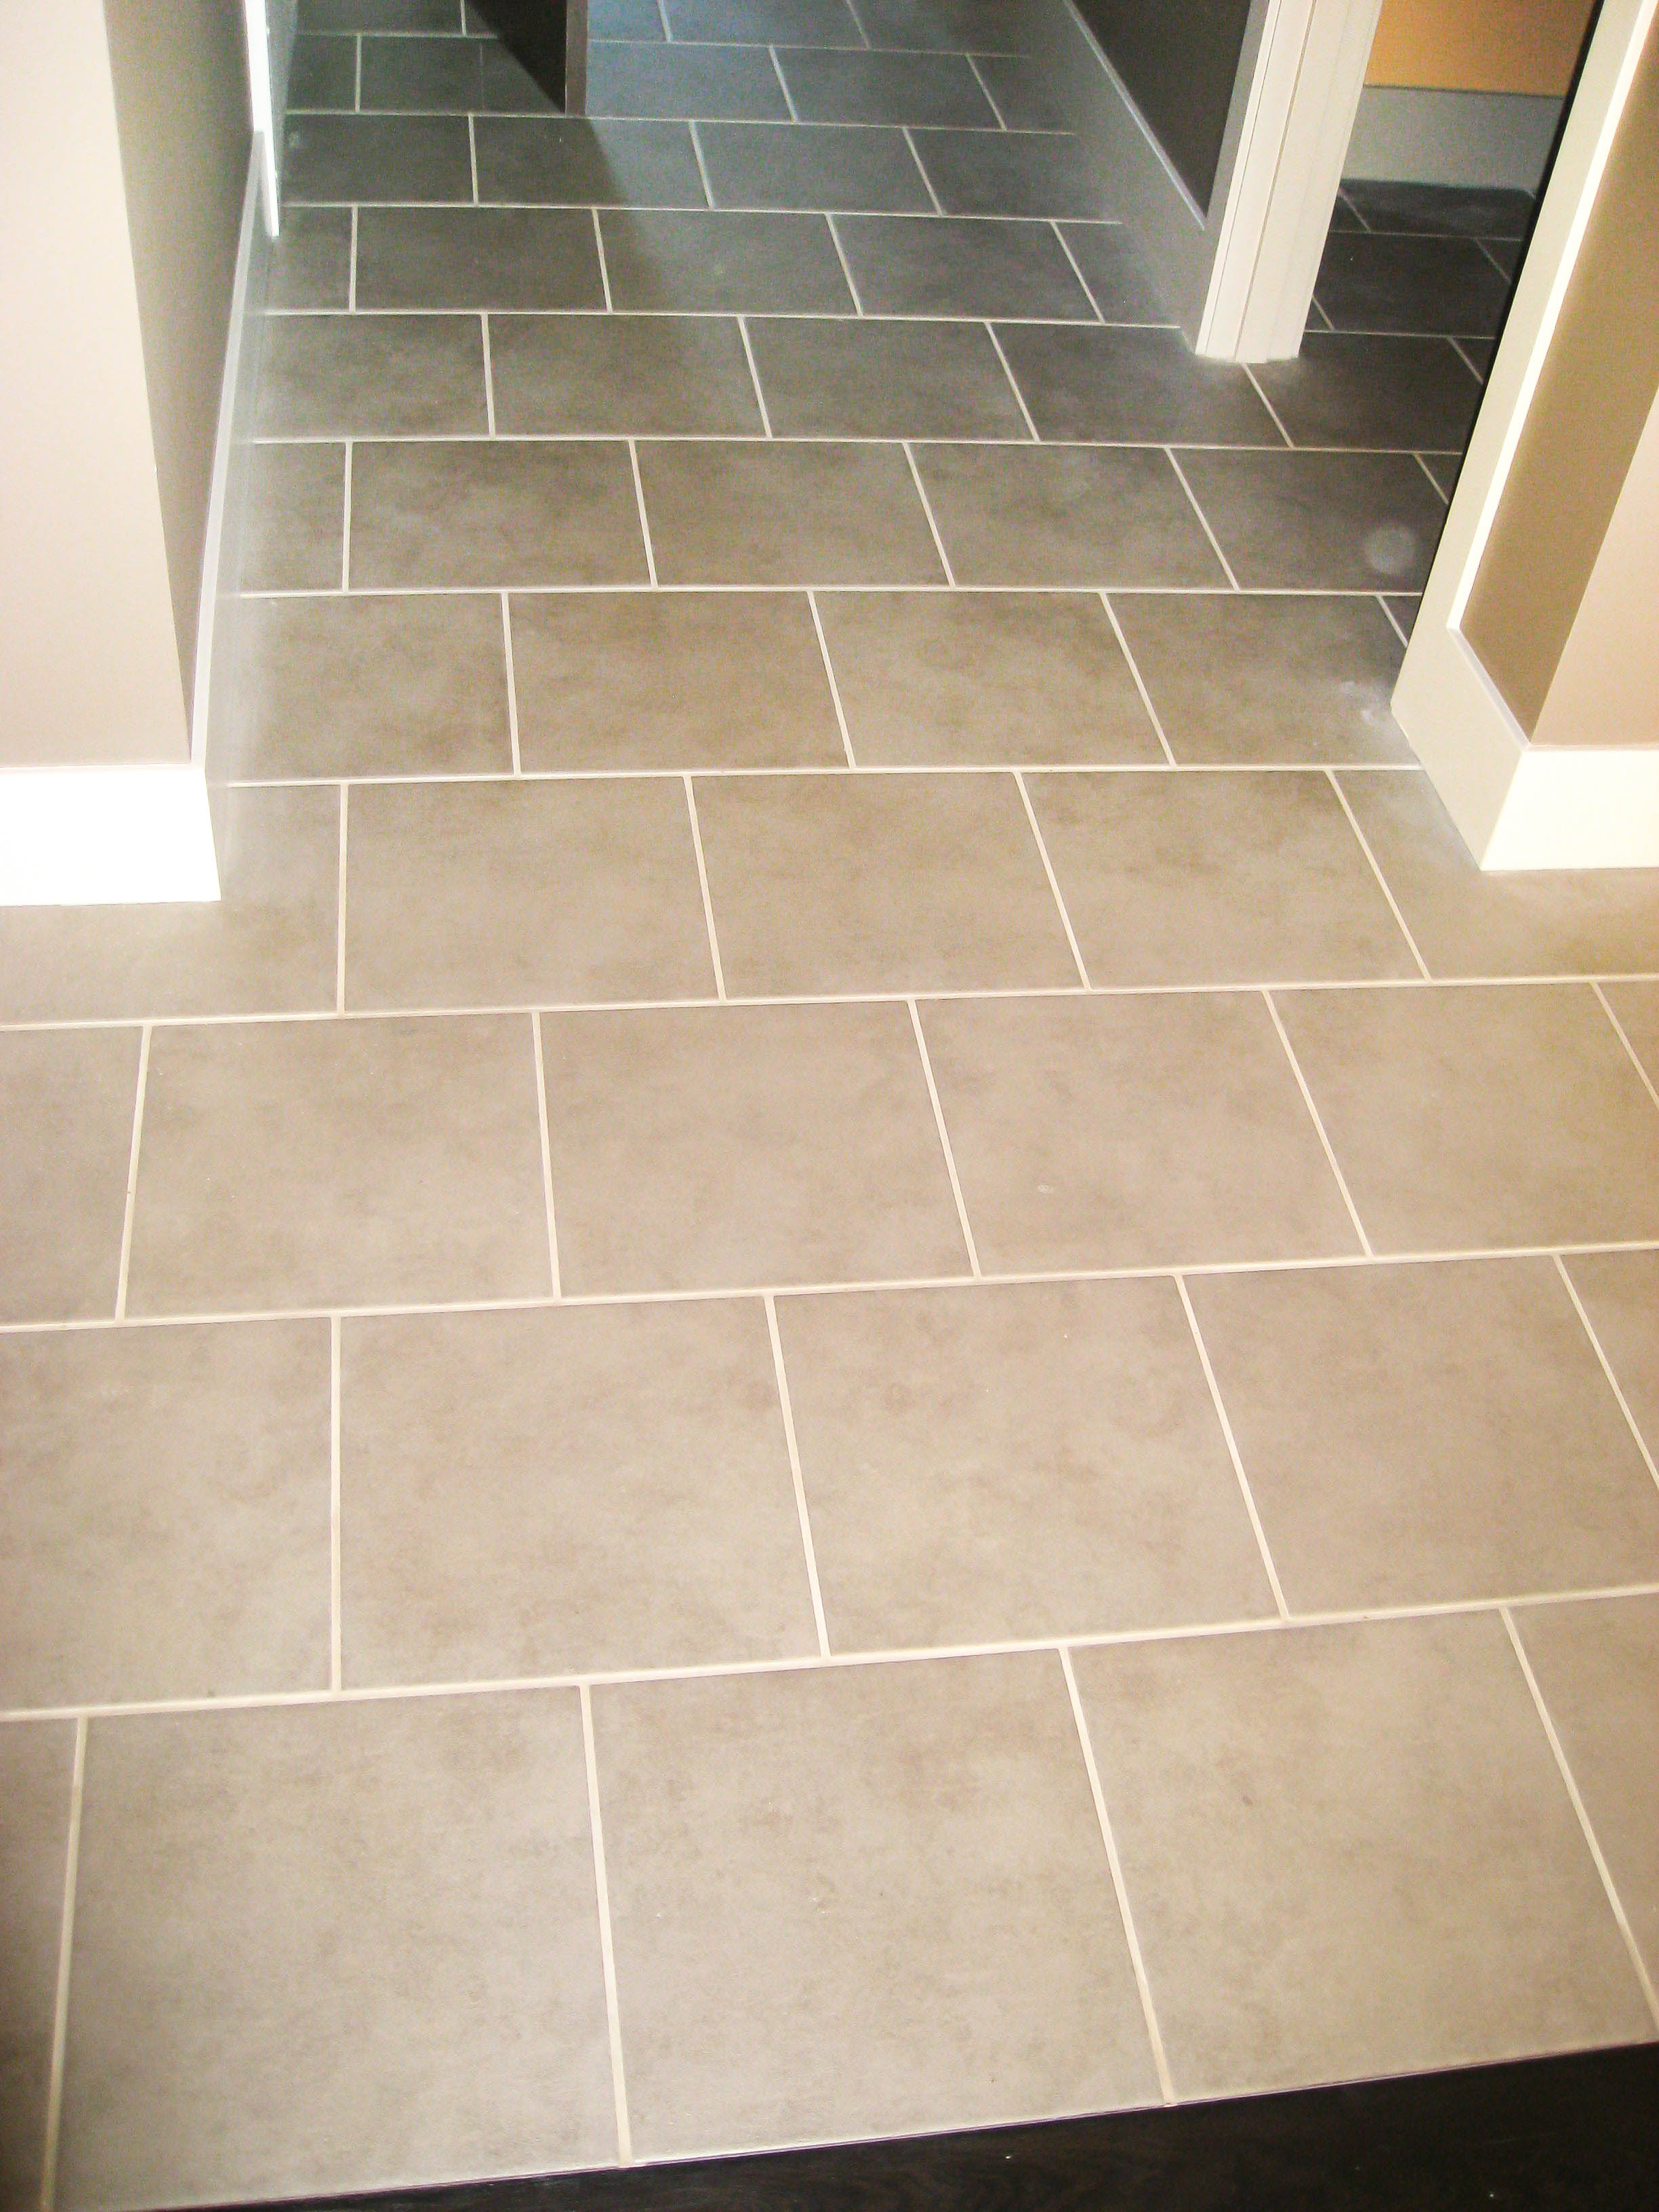 Seattle tile and grout cleaning tile contractor irc tile services tile and grout cleaning in seattle dailygadgetfo Images